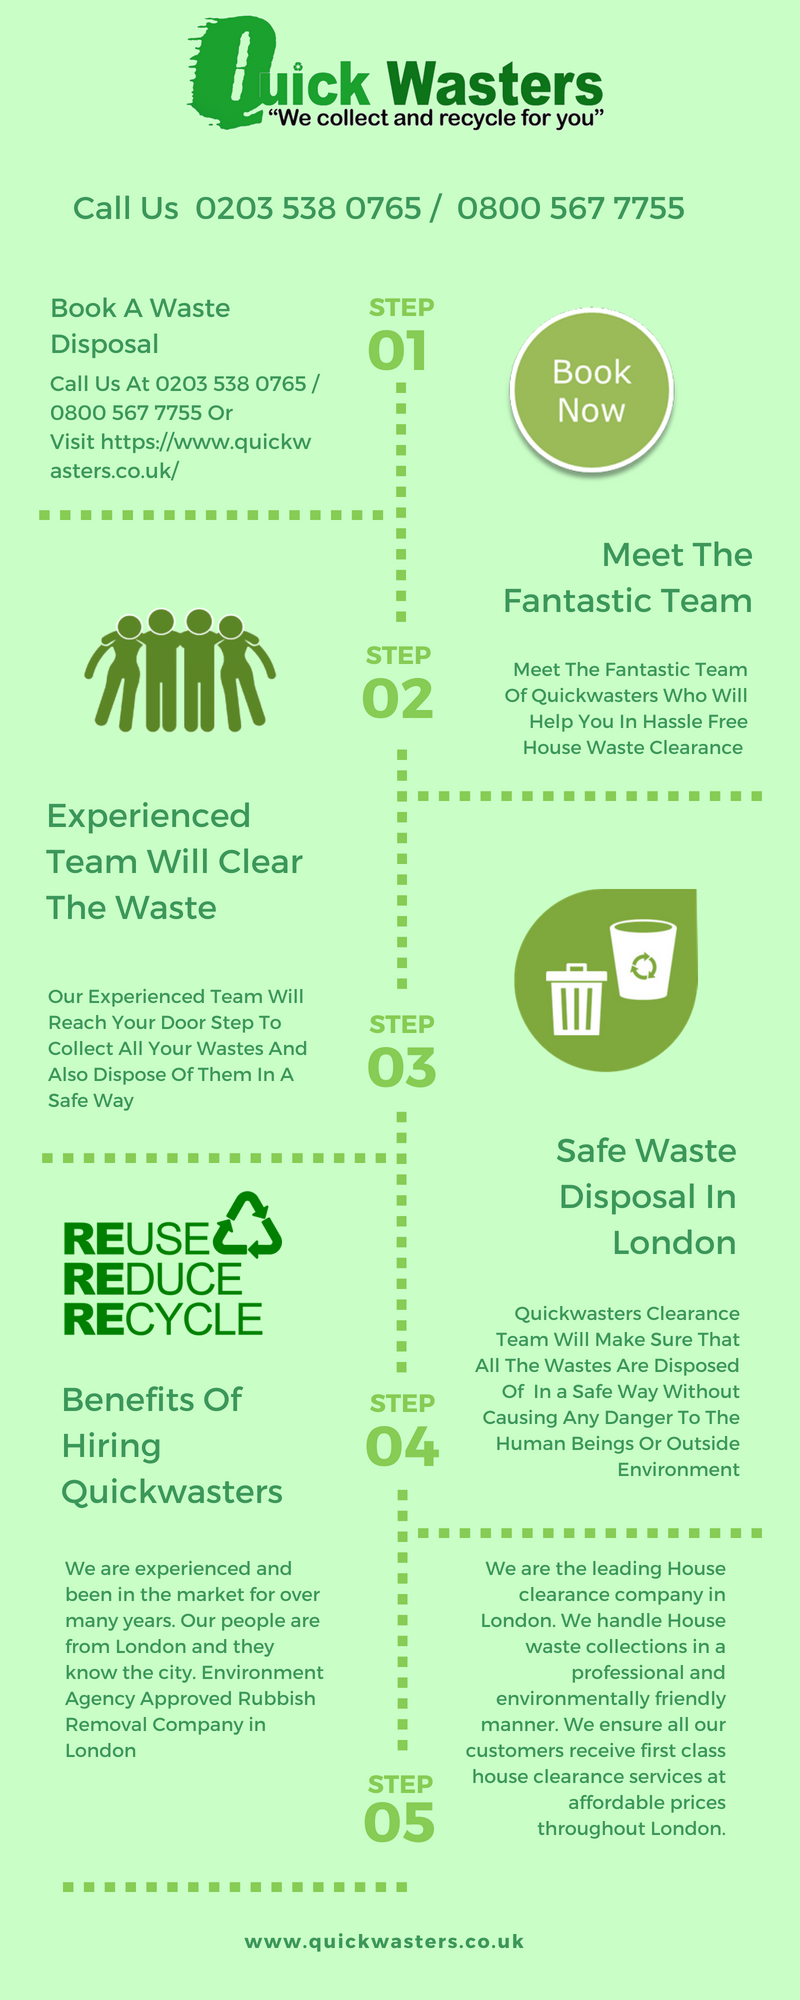 Quick Wasters – Step By Step Guide To Clear Wastes In London